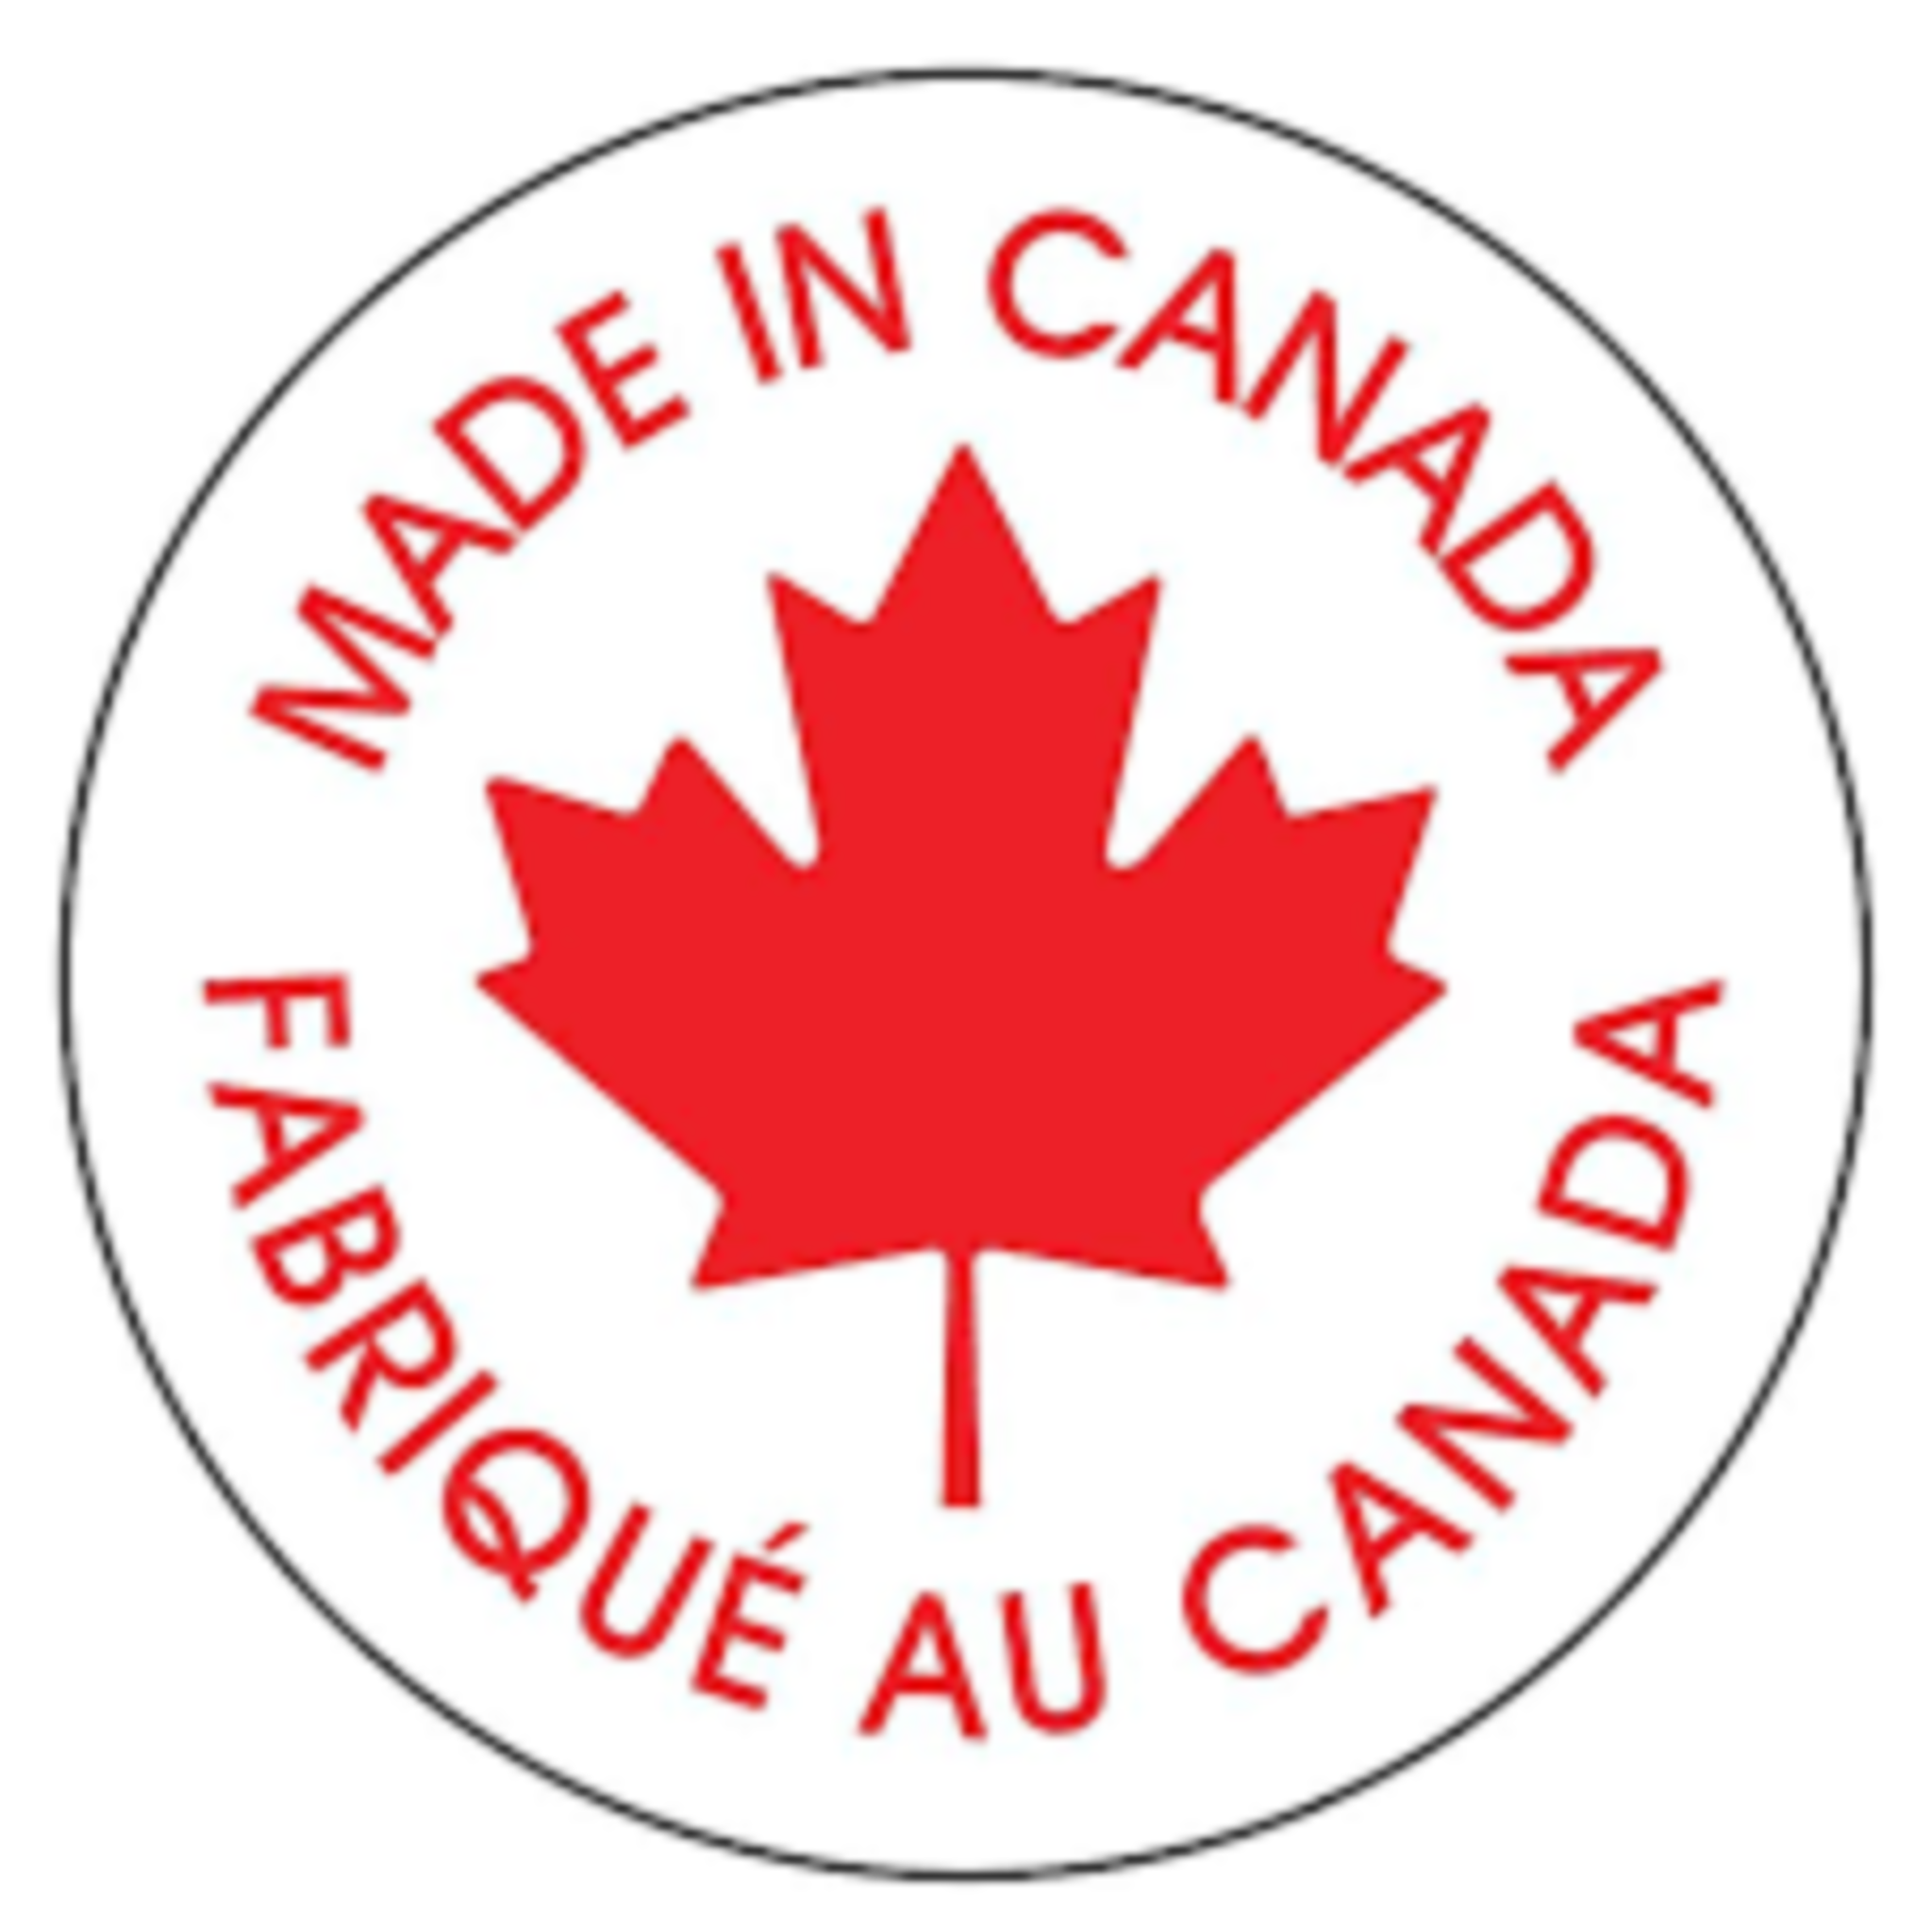 Made In Canada Procedural Face Masks ASTM Level 2 - 3 Ply